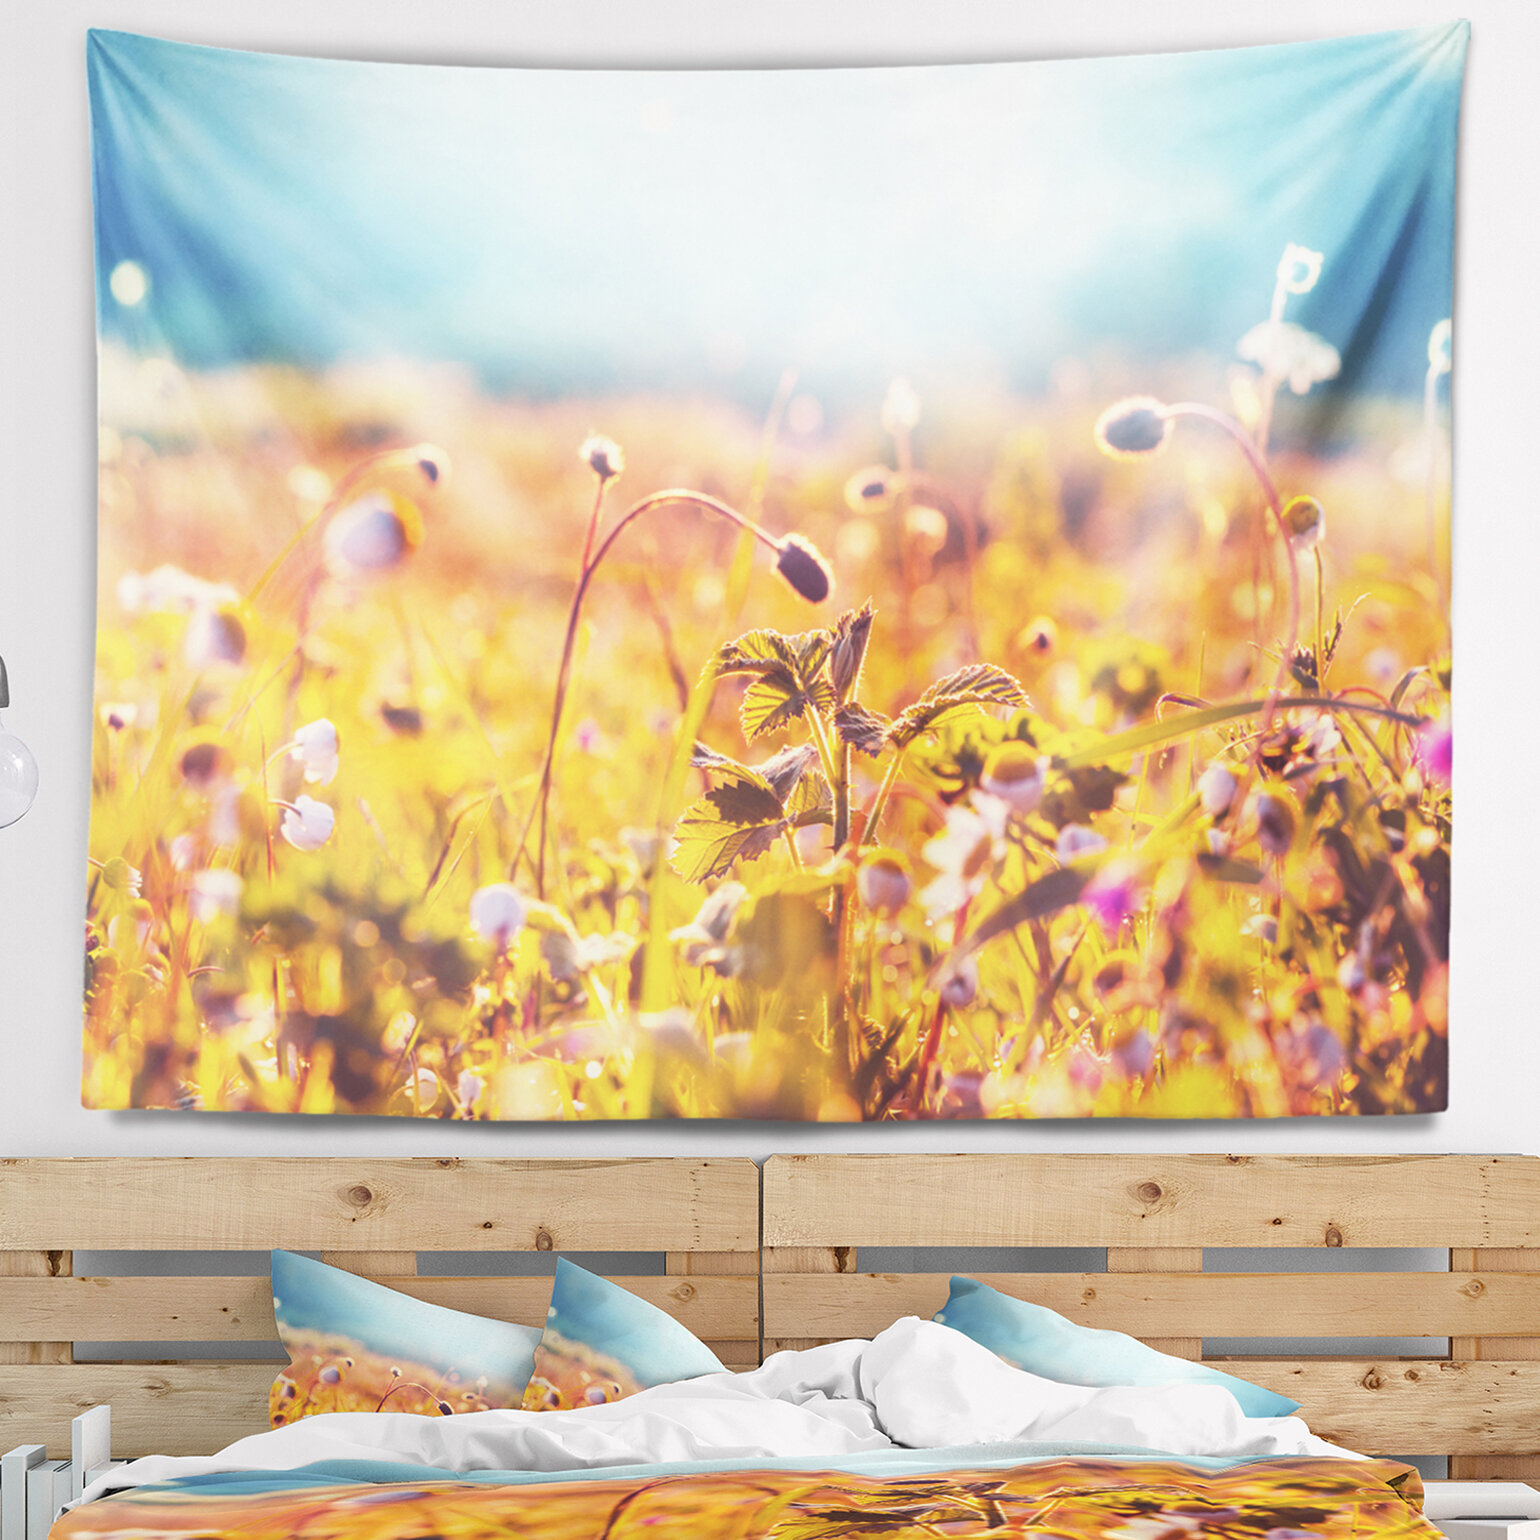 East Urban Home Floral Summer Field with Beautiful Flowers Tapestry ...